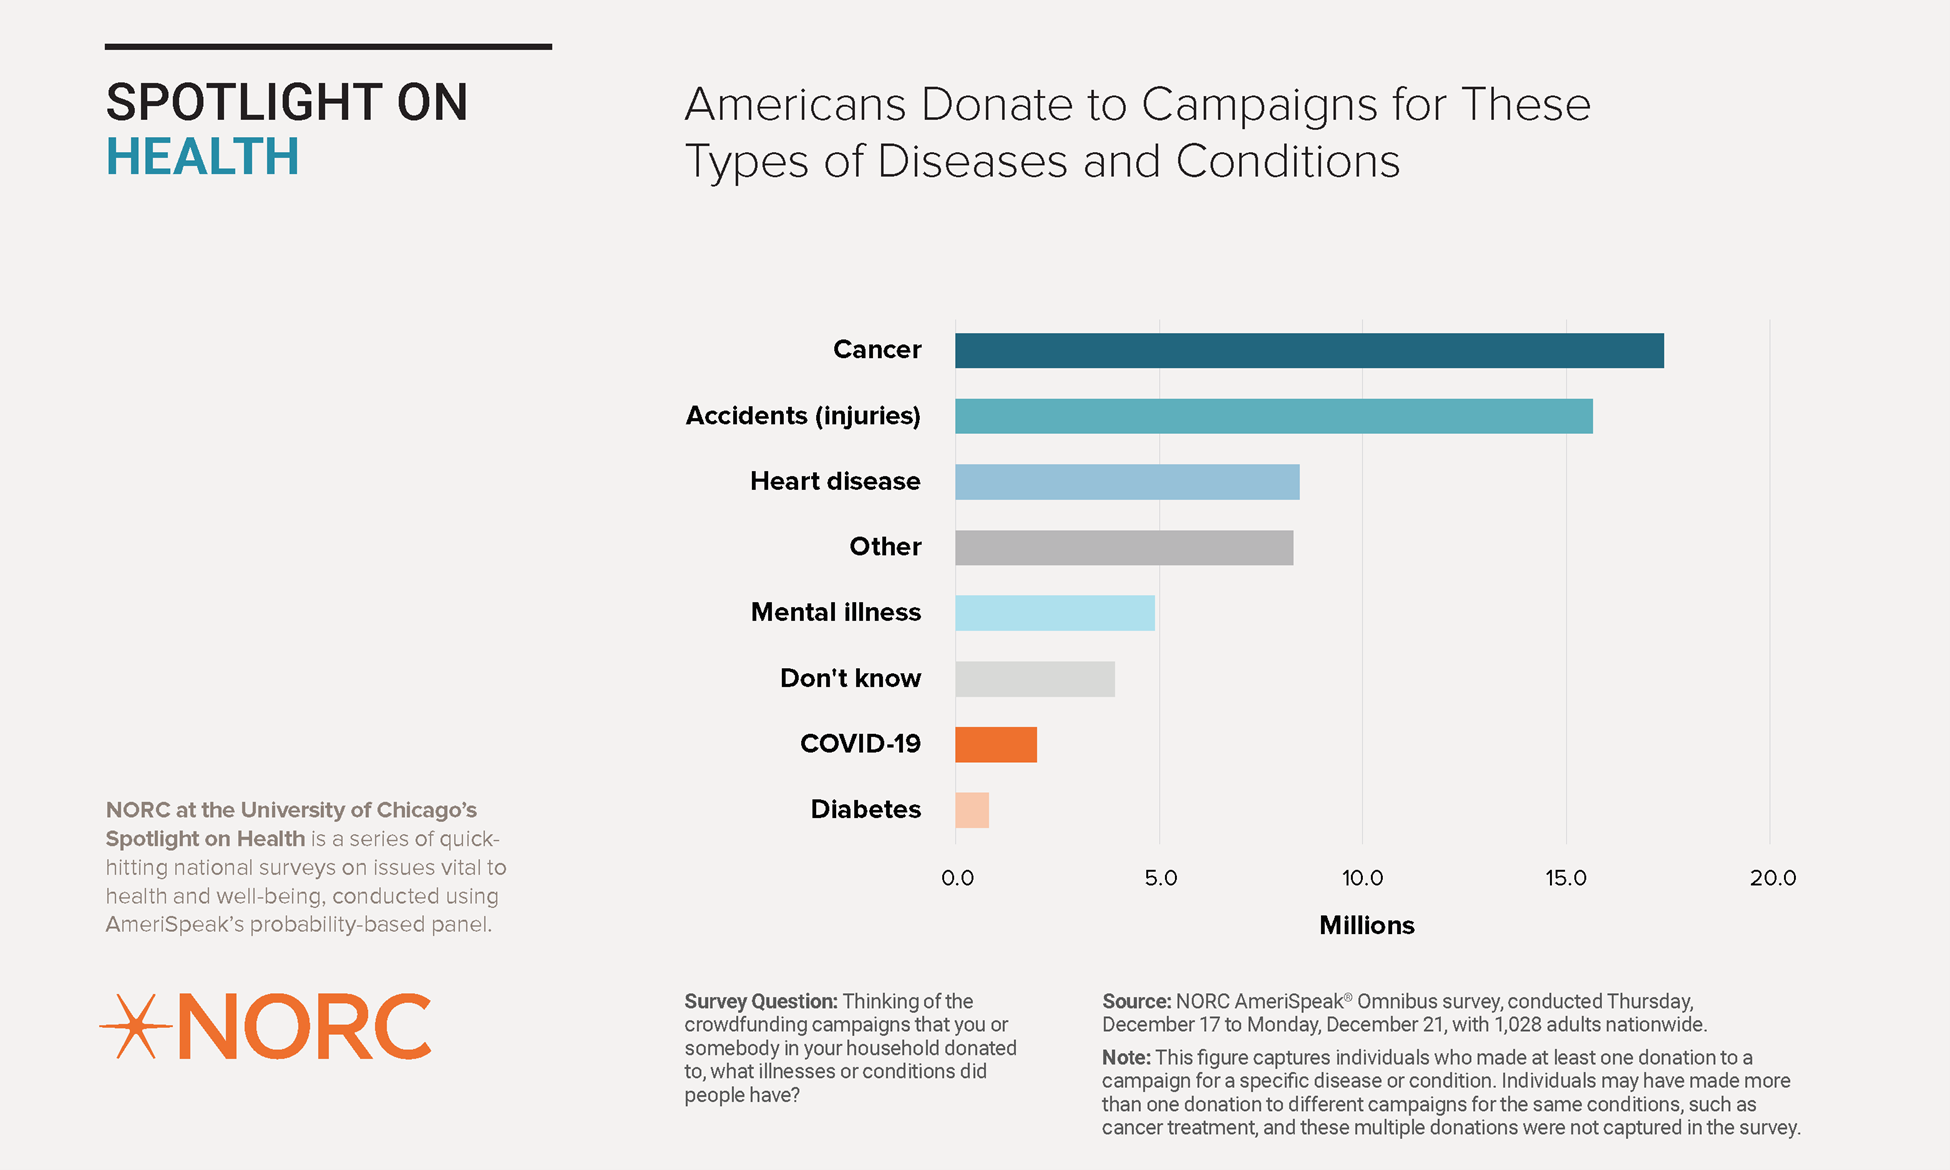 Americans Donate to These Types of Campaigns